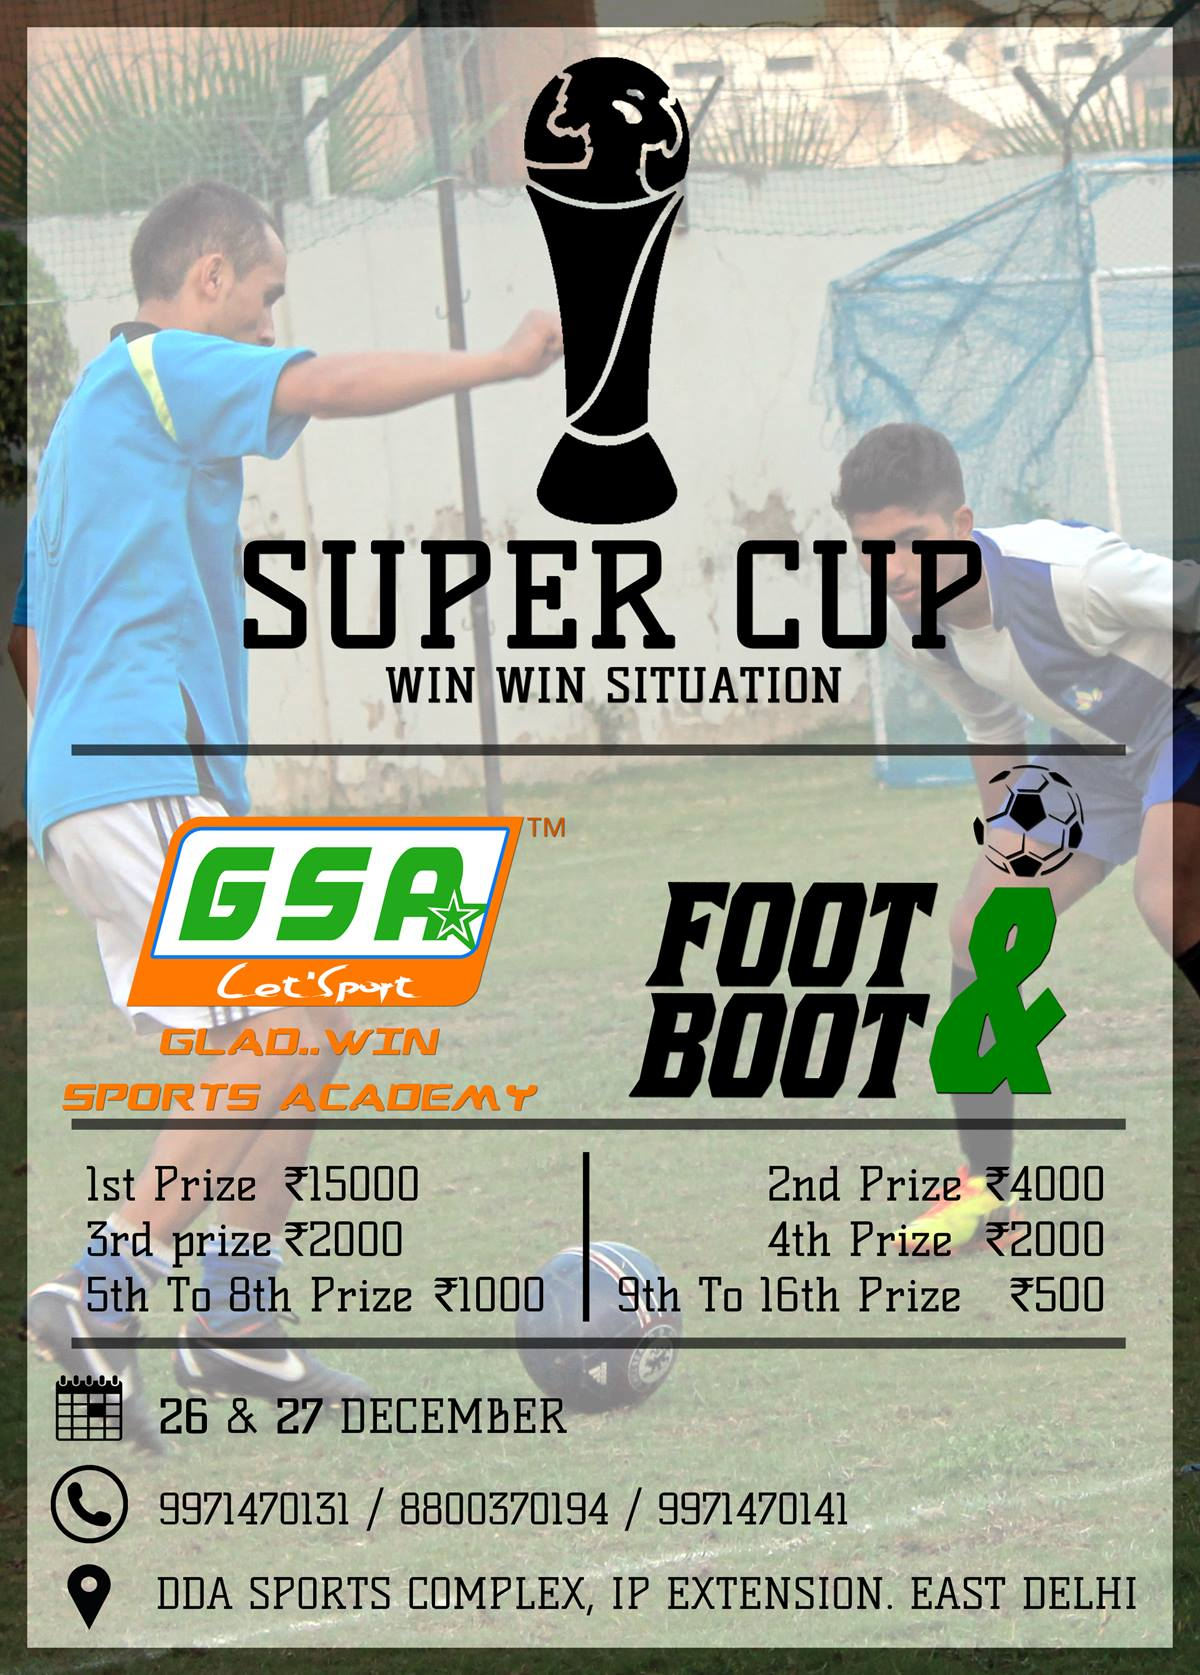 Book Online Tickets for SUPER CUP, NewDelhi. SUPER CUP